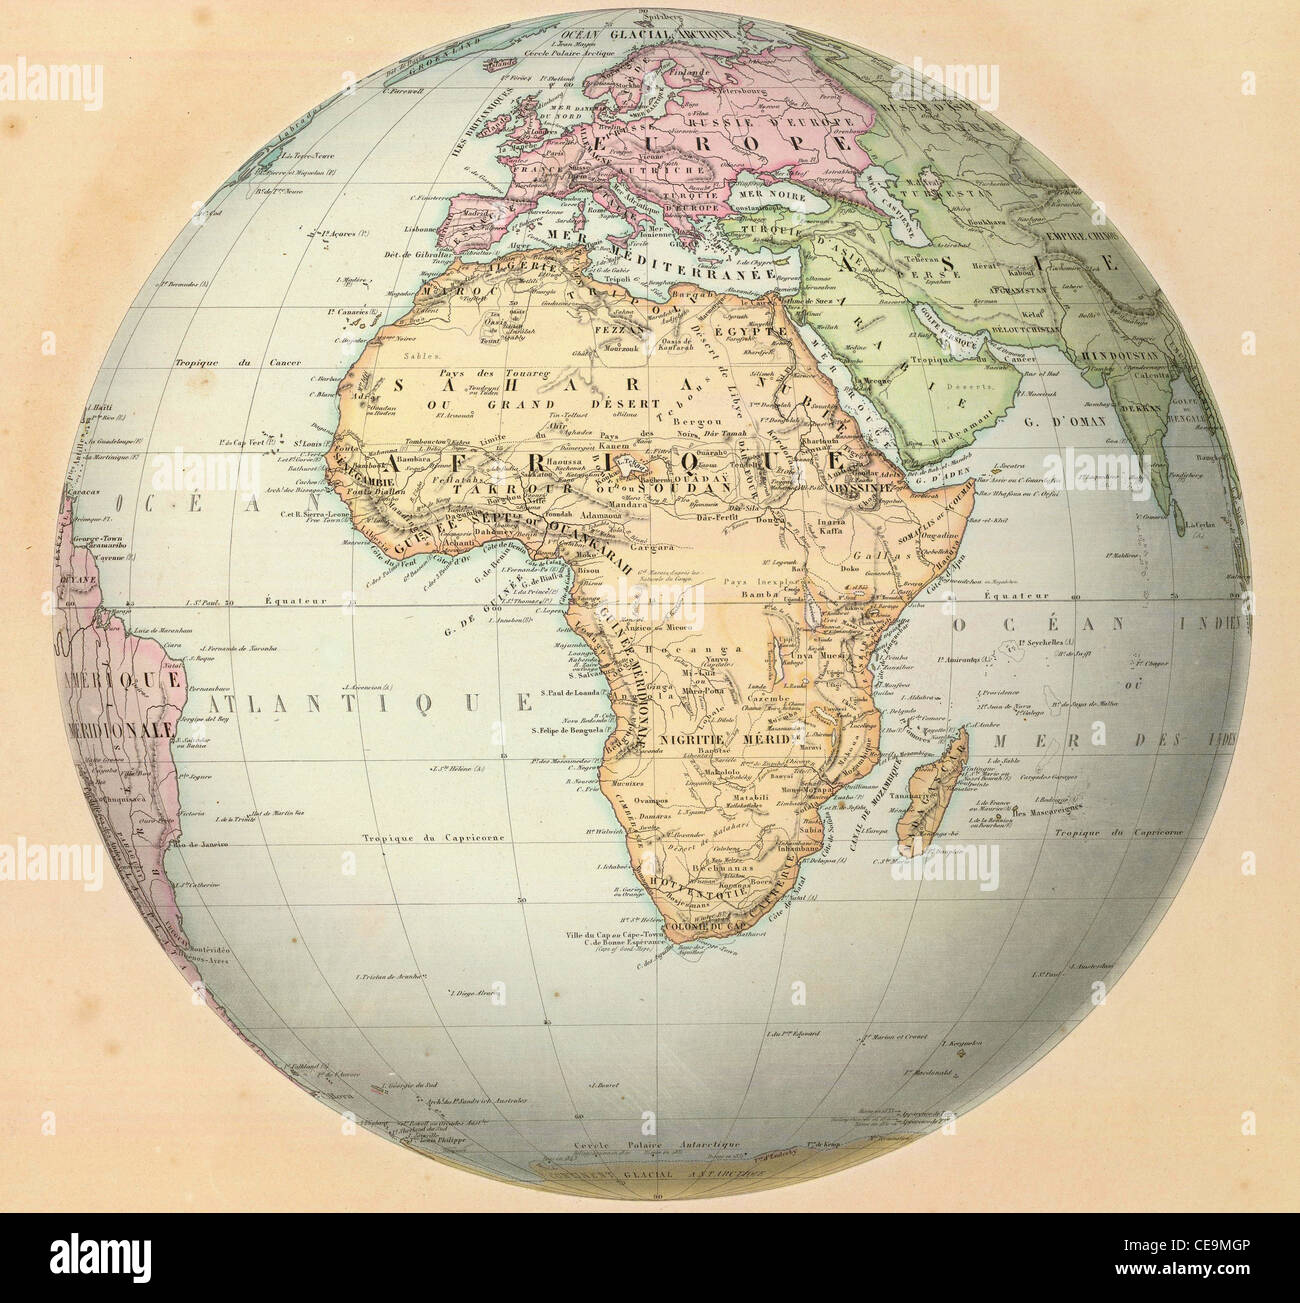 Antique map of Africa on the globe. From Atlas by F. A. Garnier, 1862. - Stock Image